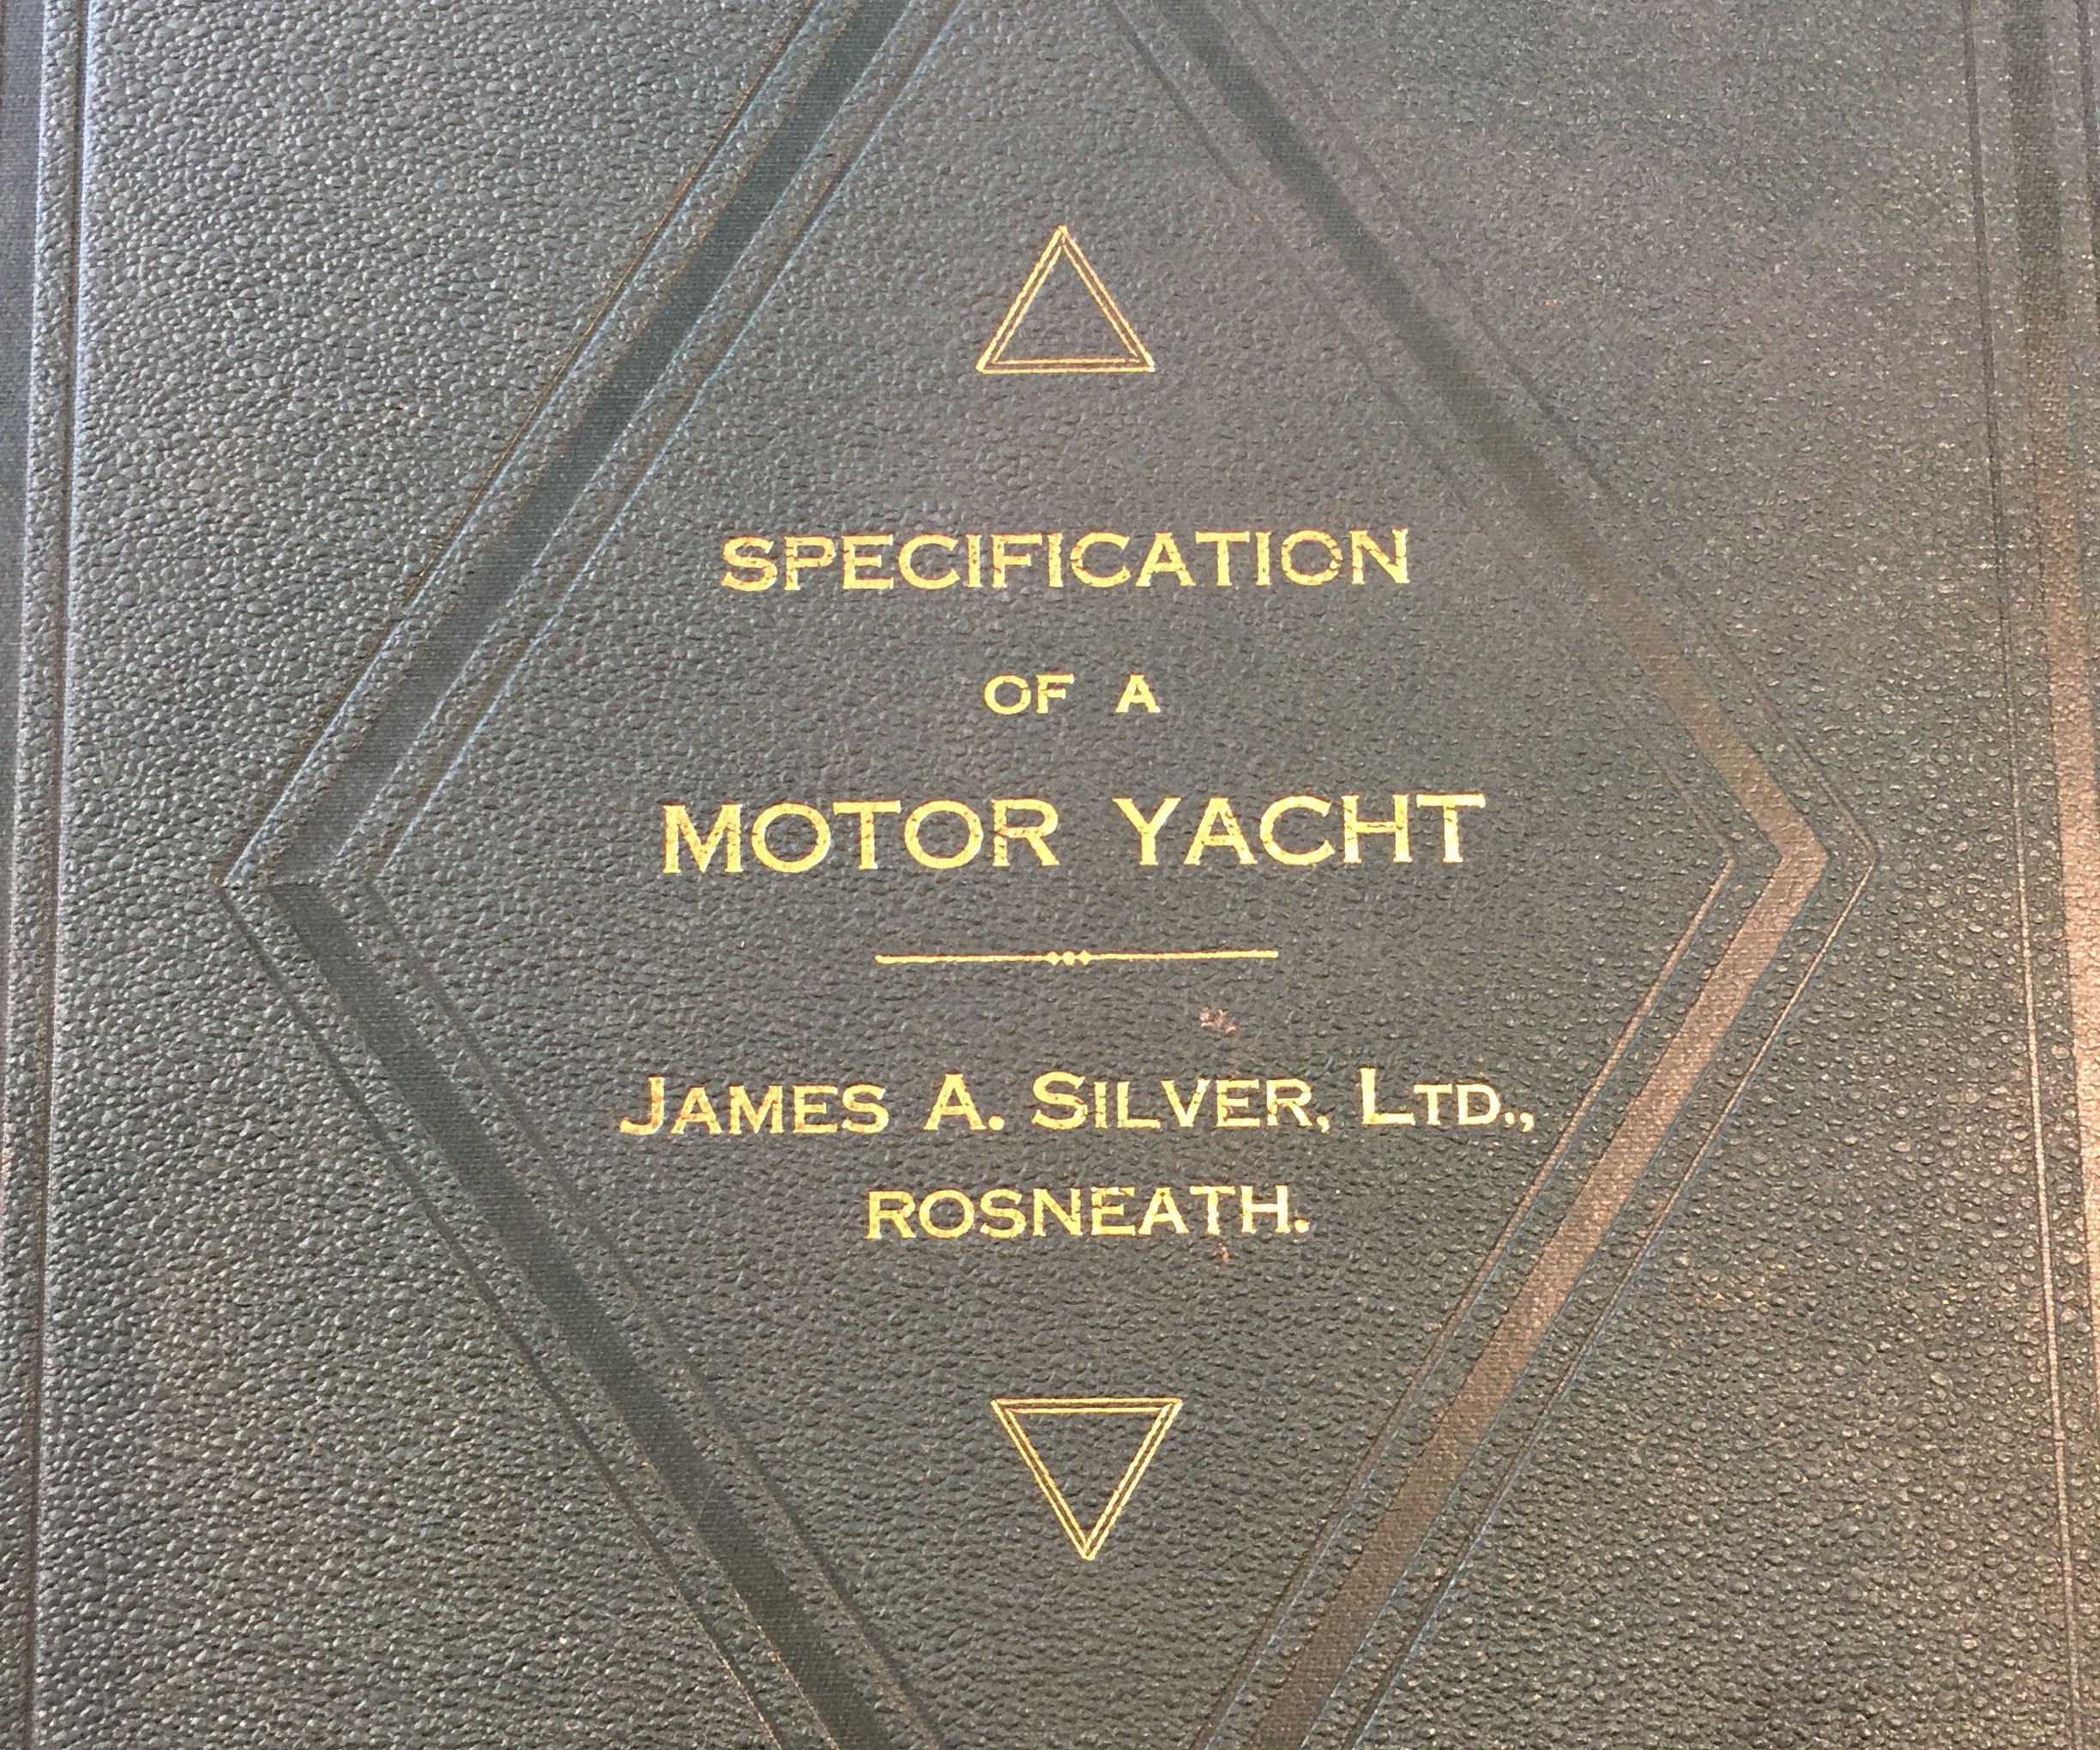 Book titled specification of a motor yacht by James A Silver Ltd.